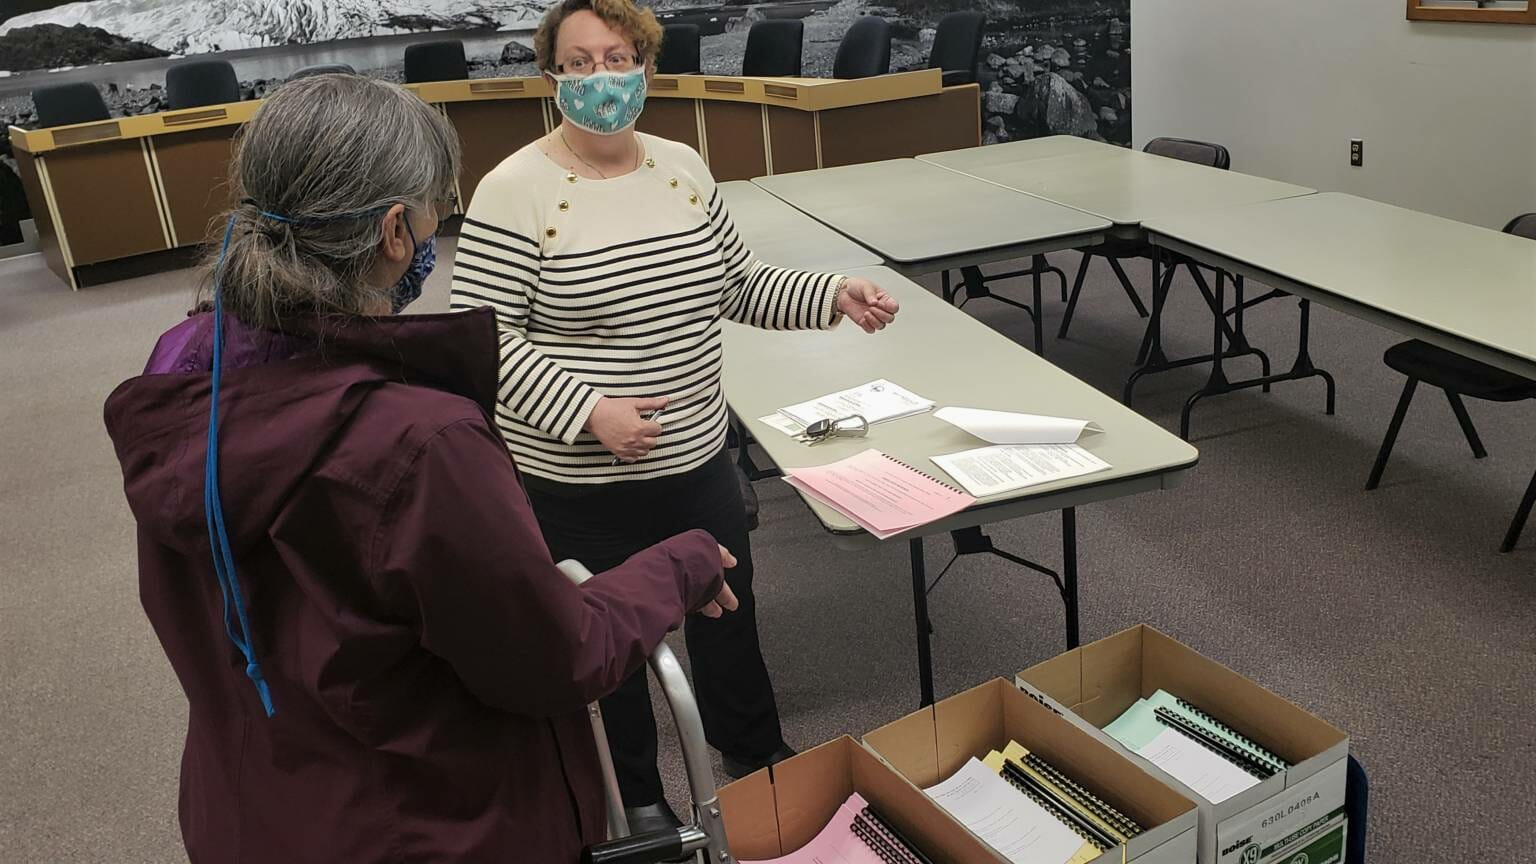 2021 05 03 Karla Hart picks up signature booklets from Juneau City Clerk Beth McEwen at City Hall 2 1536x864.